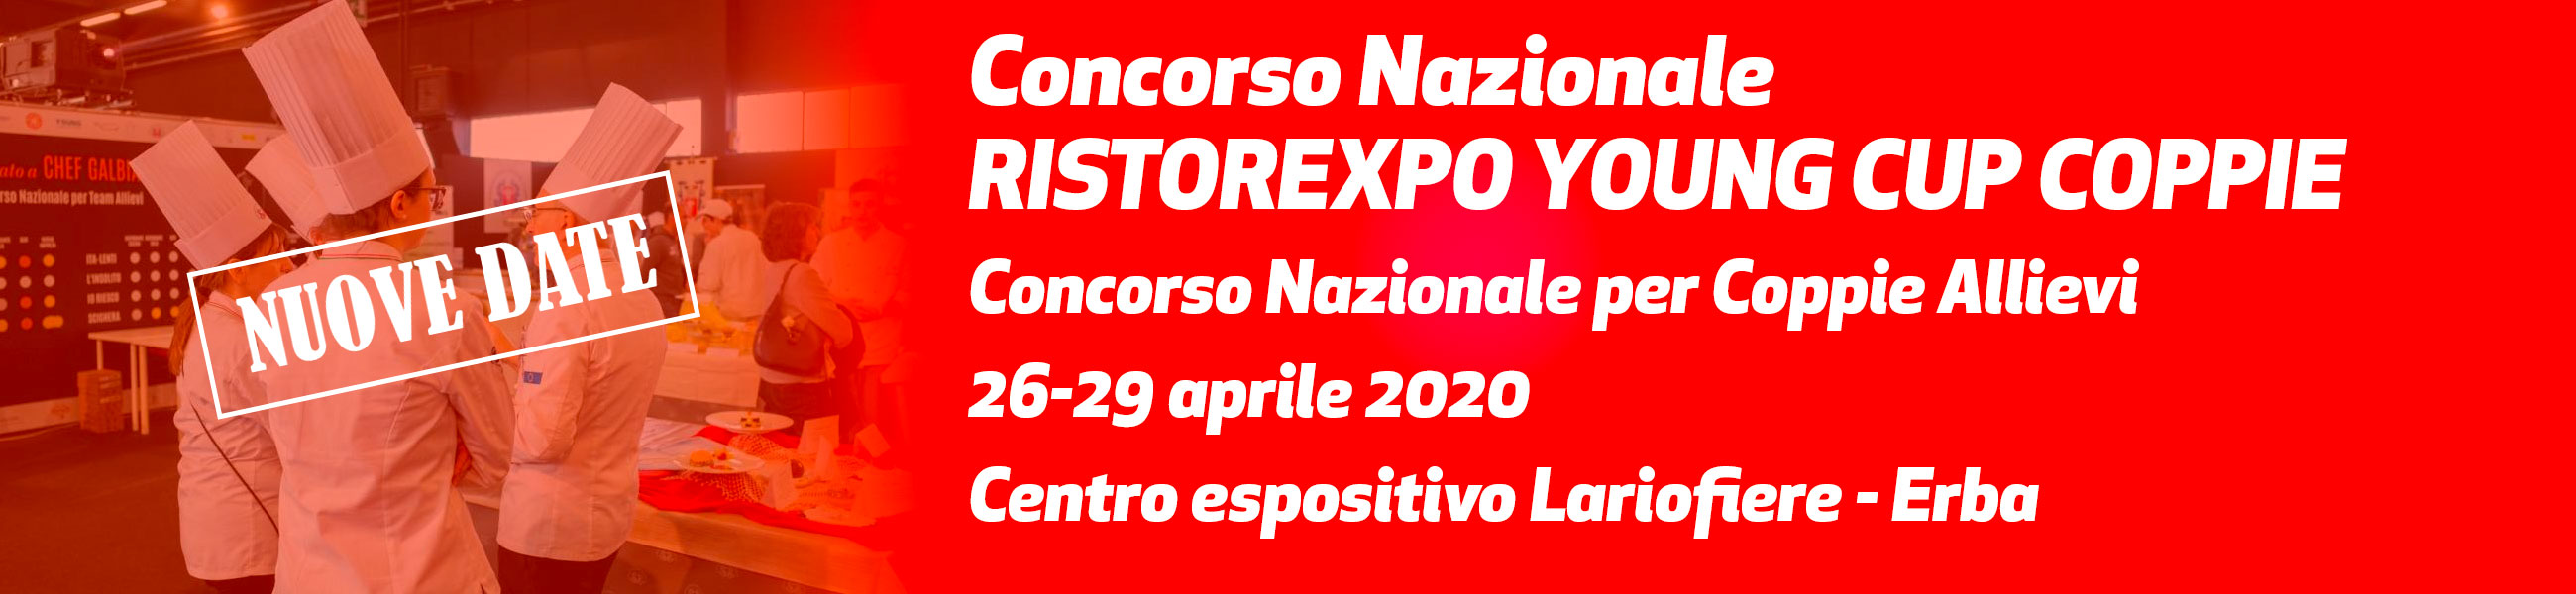 26-29 aprile 2020 - Ristorexpo Young Cup Coppie